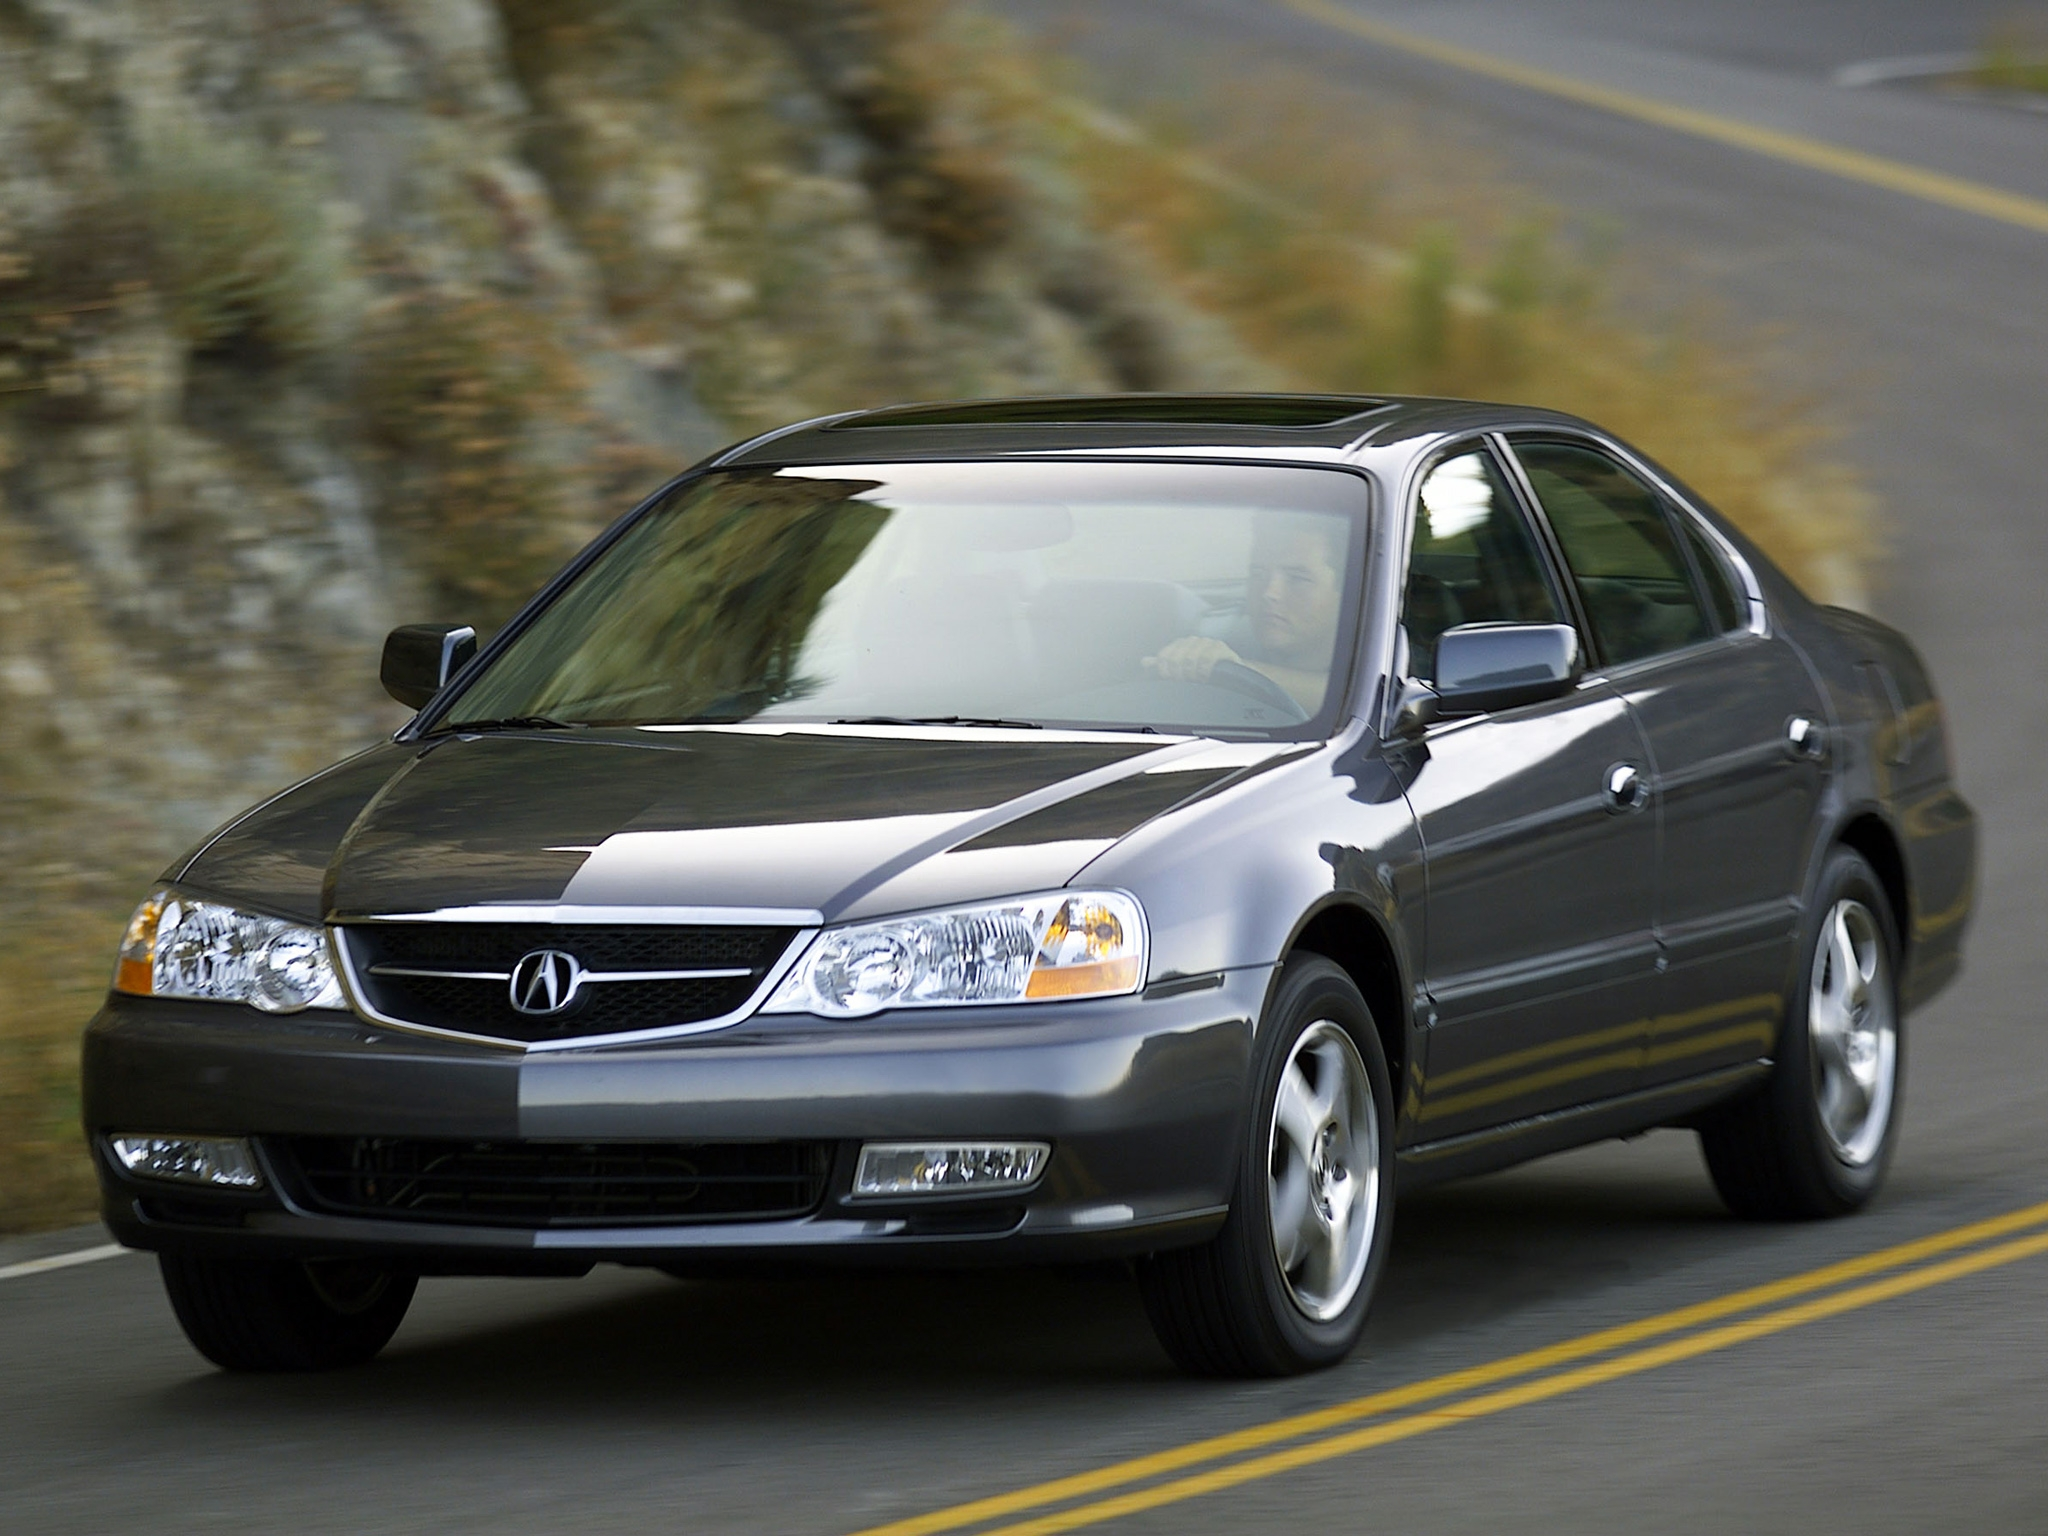 81848 download wallpaper Cars, Acura, Tl, 2002, Front View, Style, Auto, Akura, Asphalt, Mountains screensavers and pictures for free